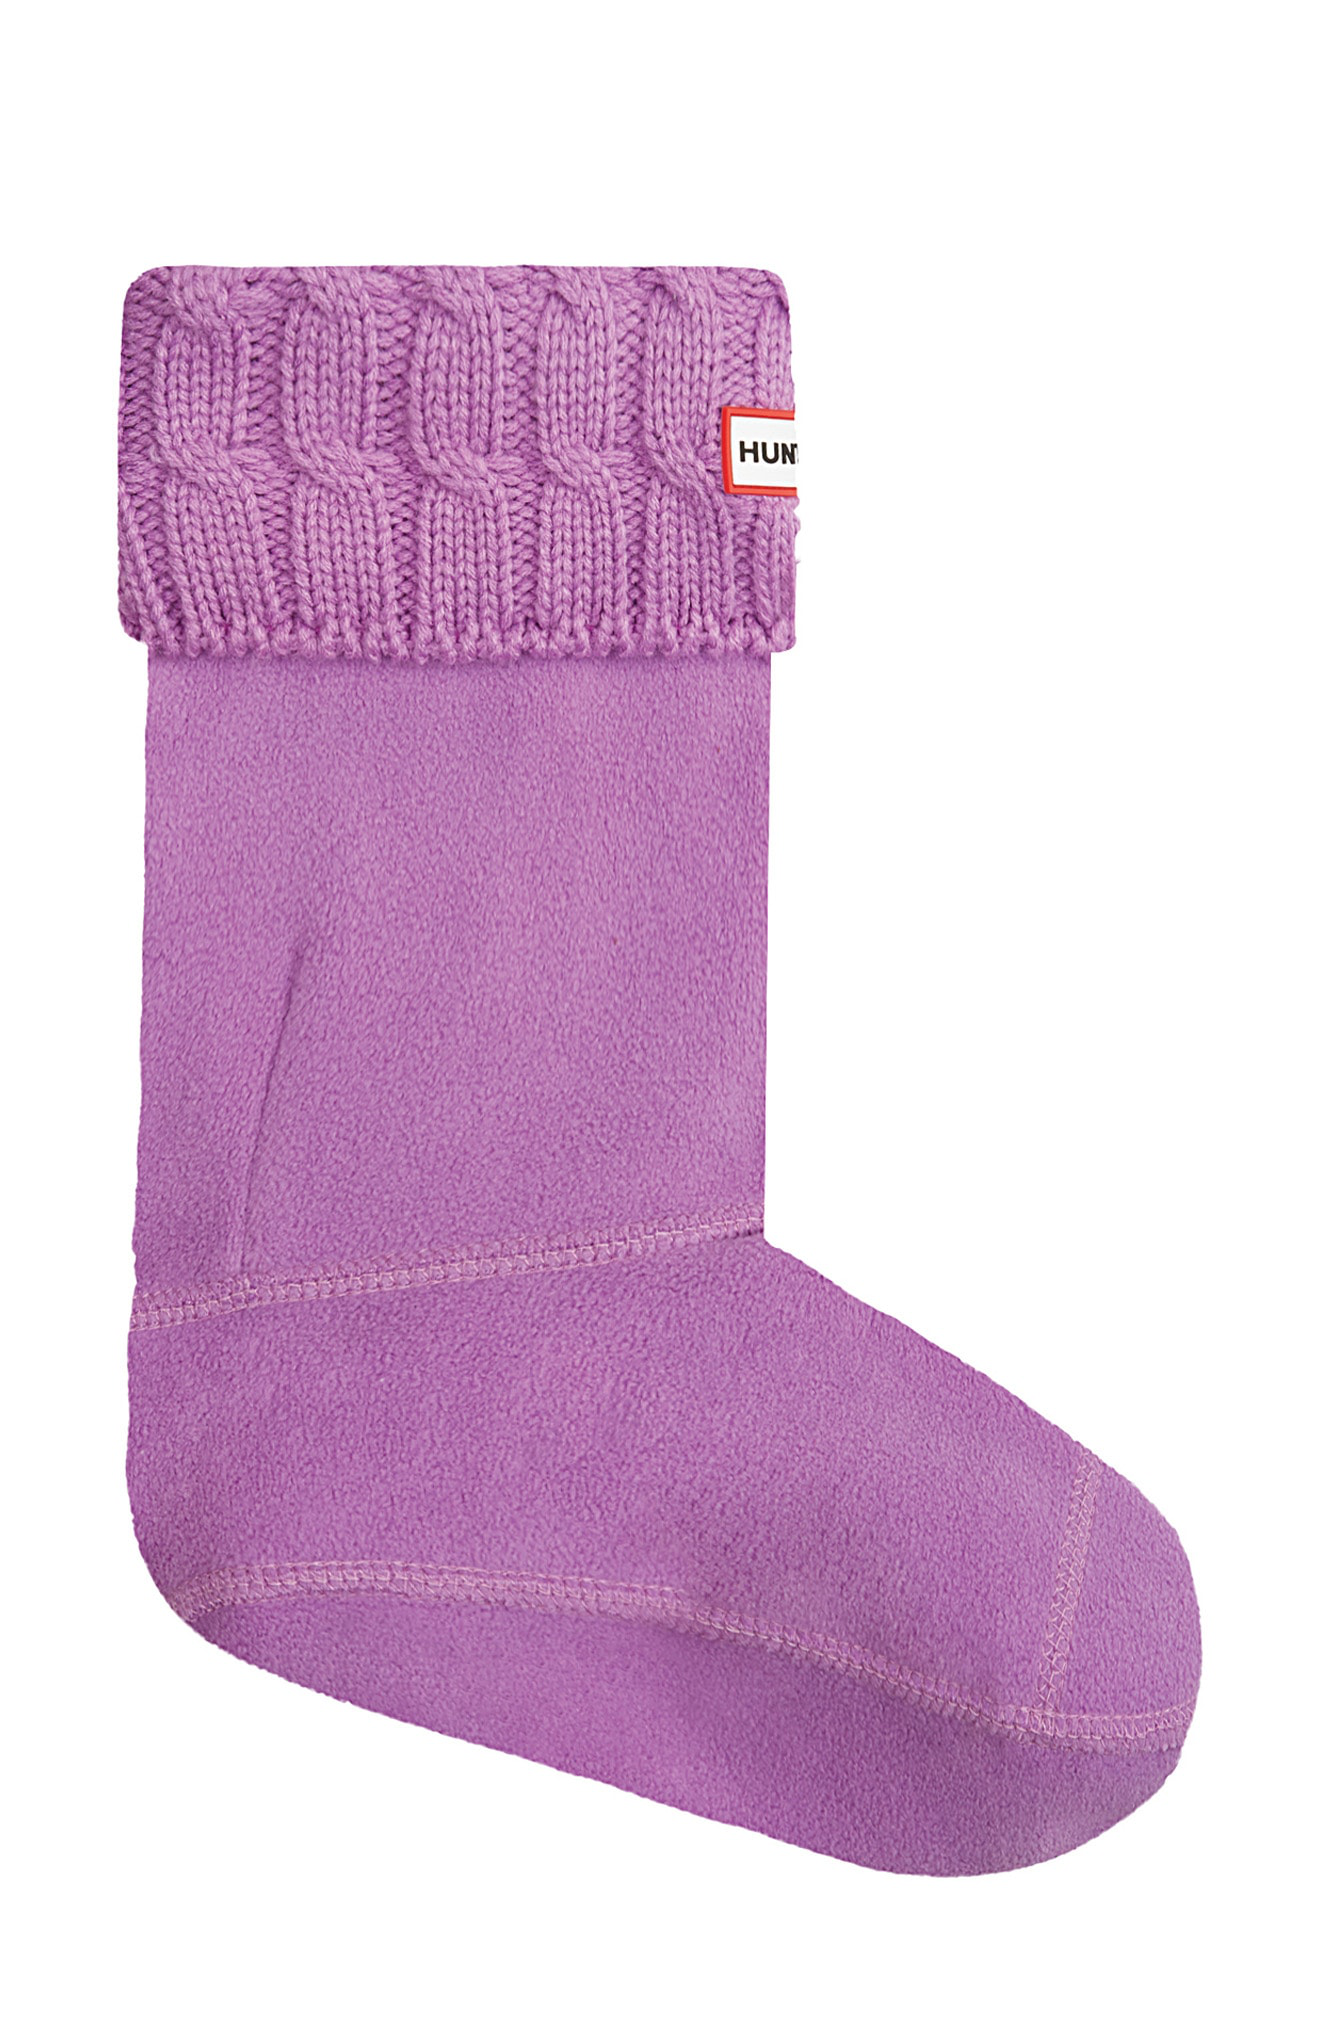 5df9a717453f0 Hunter Original Short Cable Knit Cuff Welly Boot Socks In Thistle ...